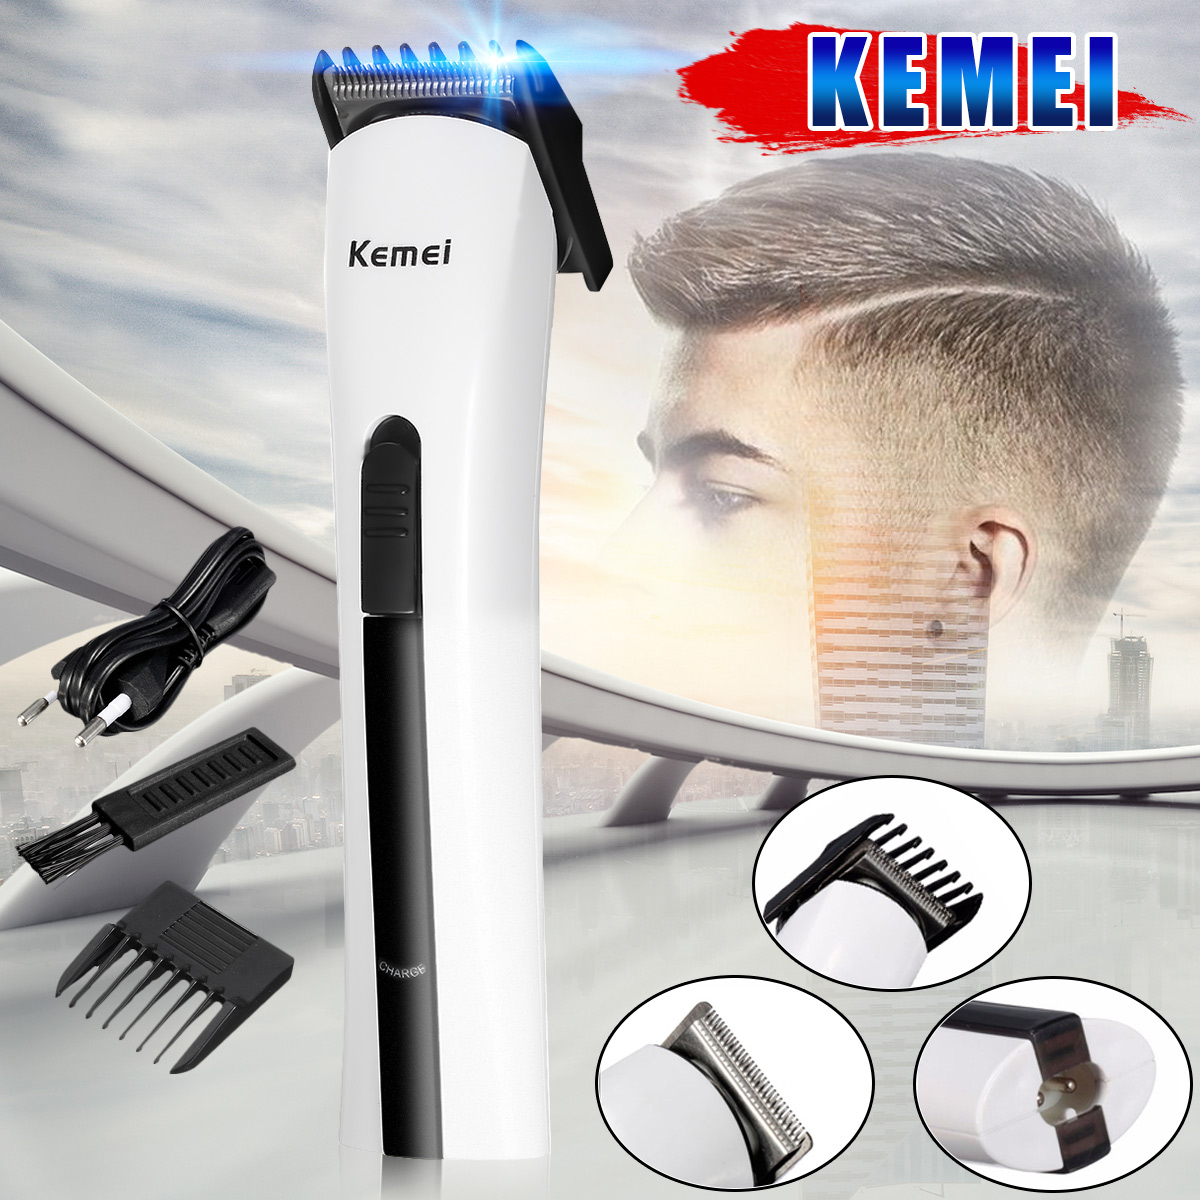 где купить Kemei KM-2516 Rechargeable Hair Trimmer Men Electric Shaver Razor Beard Hair Clipper Cutting Trimmer Grooming дешево